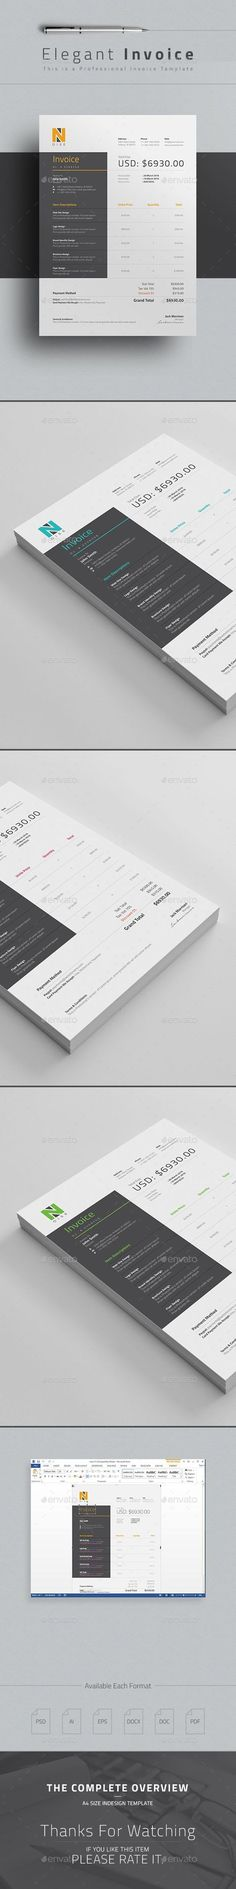 Invoice • Available here → http://graphicriver.net/item/invoice/15274575?s_rank=168&ref=pxcr: